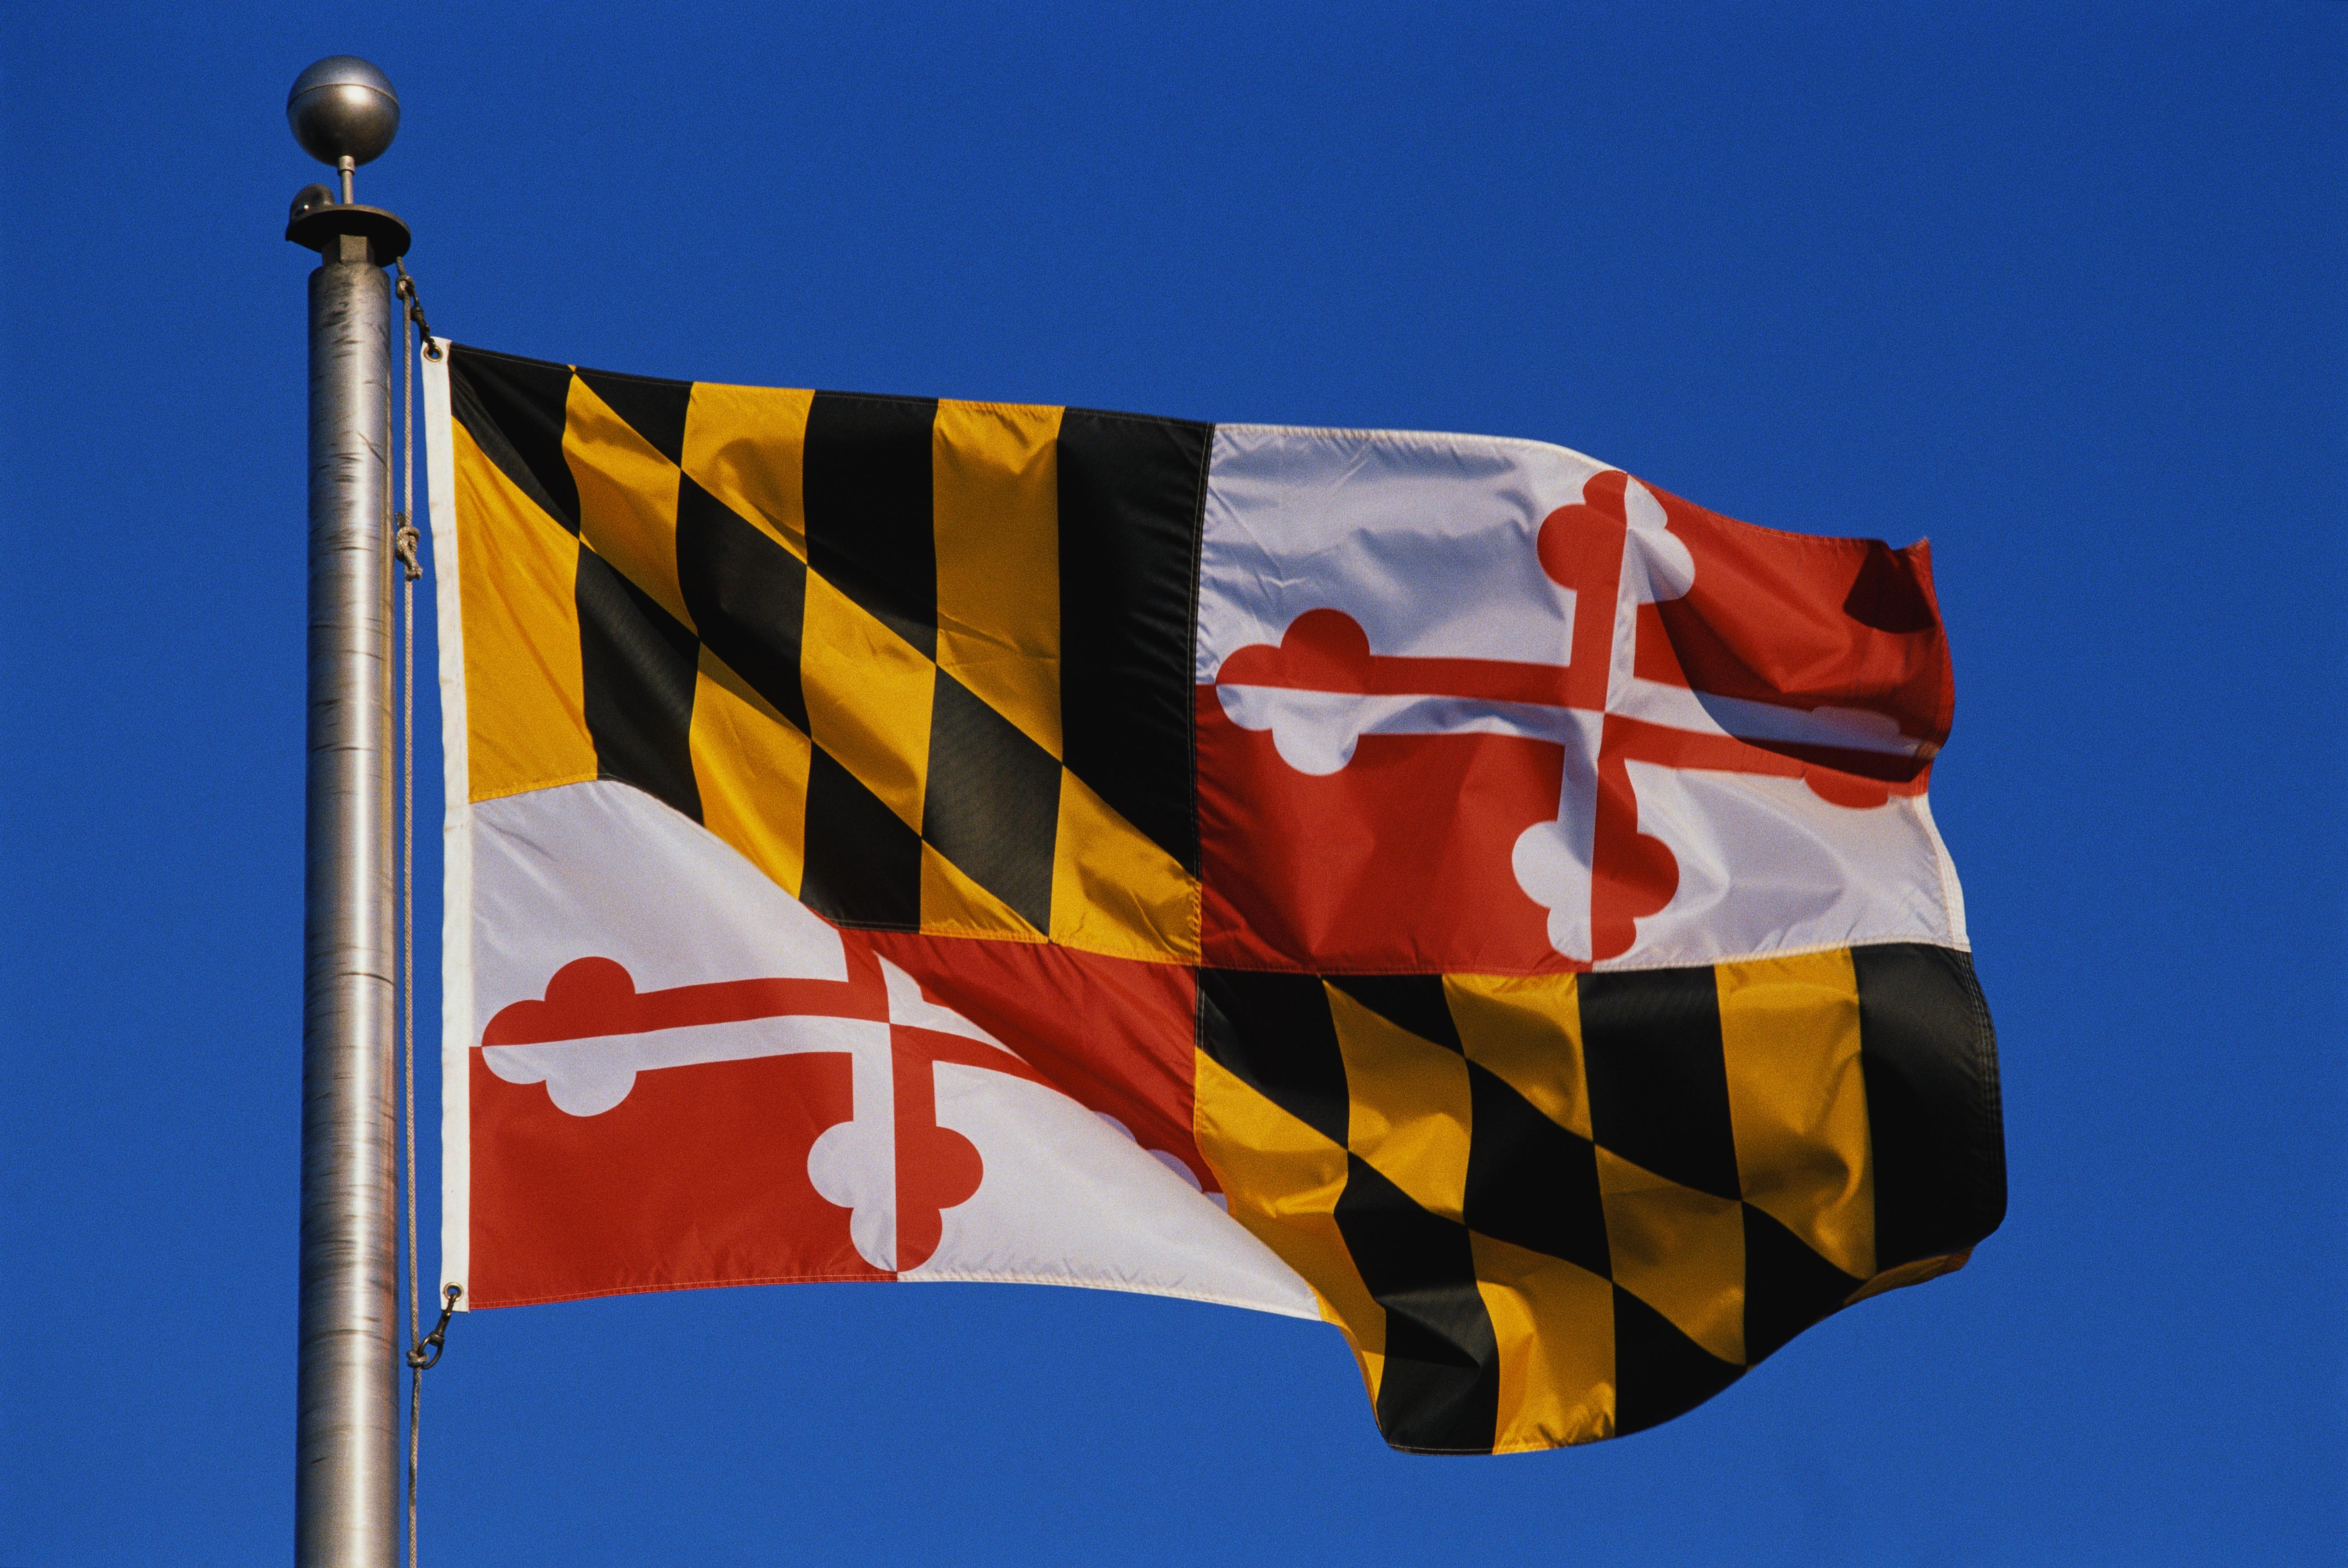 This is the State Flag flying on a flagpole against a blue sky. The flag has black and white checks with its symbol in the center.